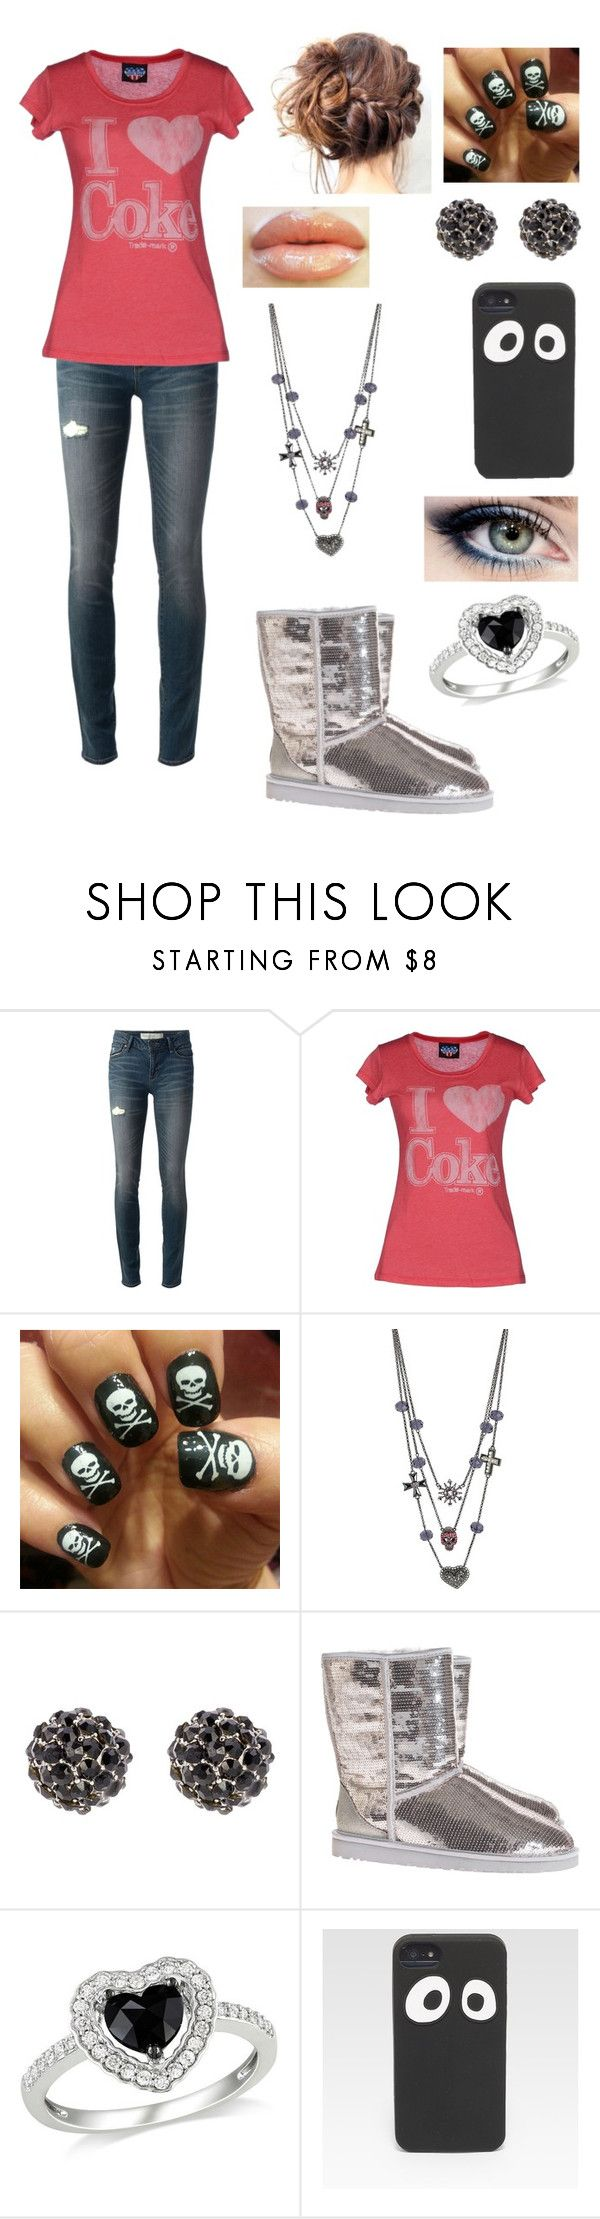 """I love coke"" by gymnastonbars ❤ liked on Polyvore featuring Marc by Marc Jacobs, Junk Food Clothing, Betsey Johnson, Snö Of Sweden, UGG Australia, Amour and Jack Spade"